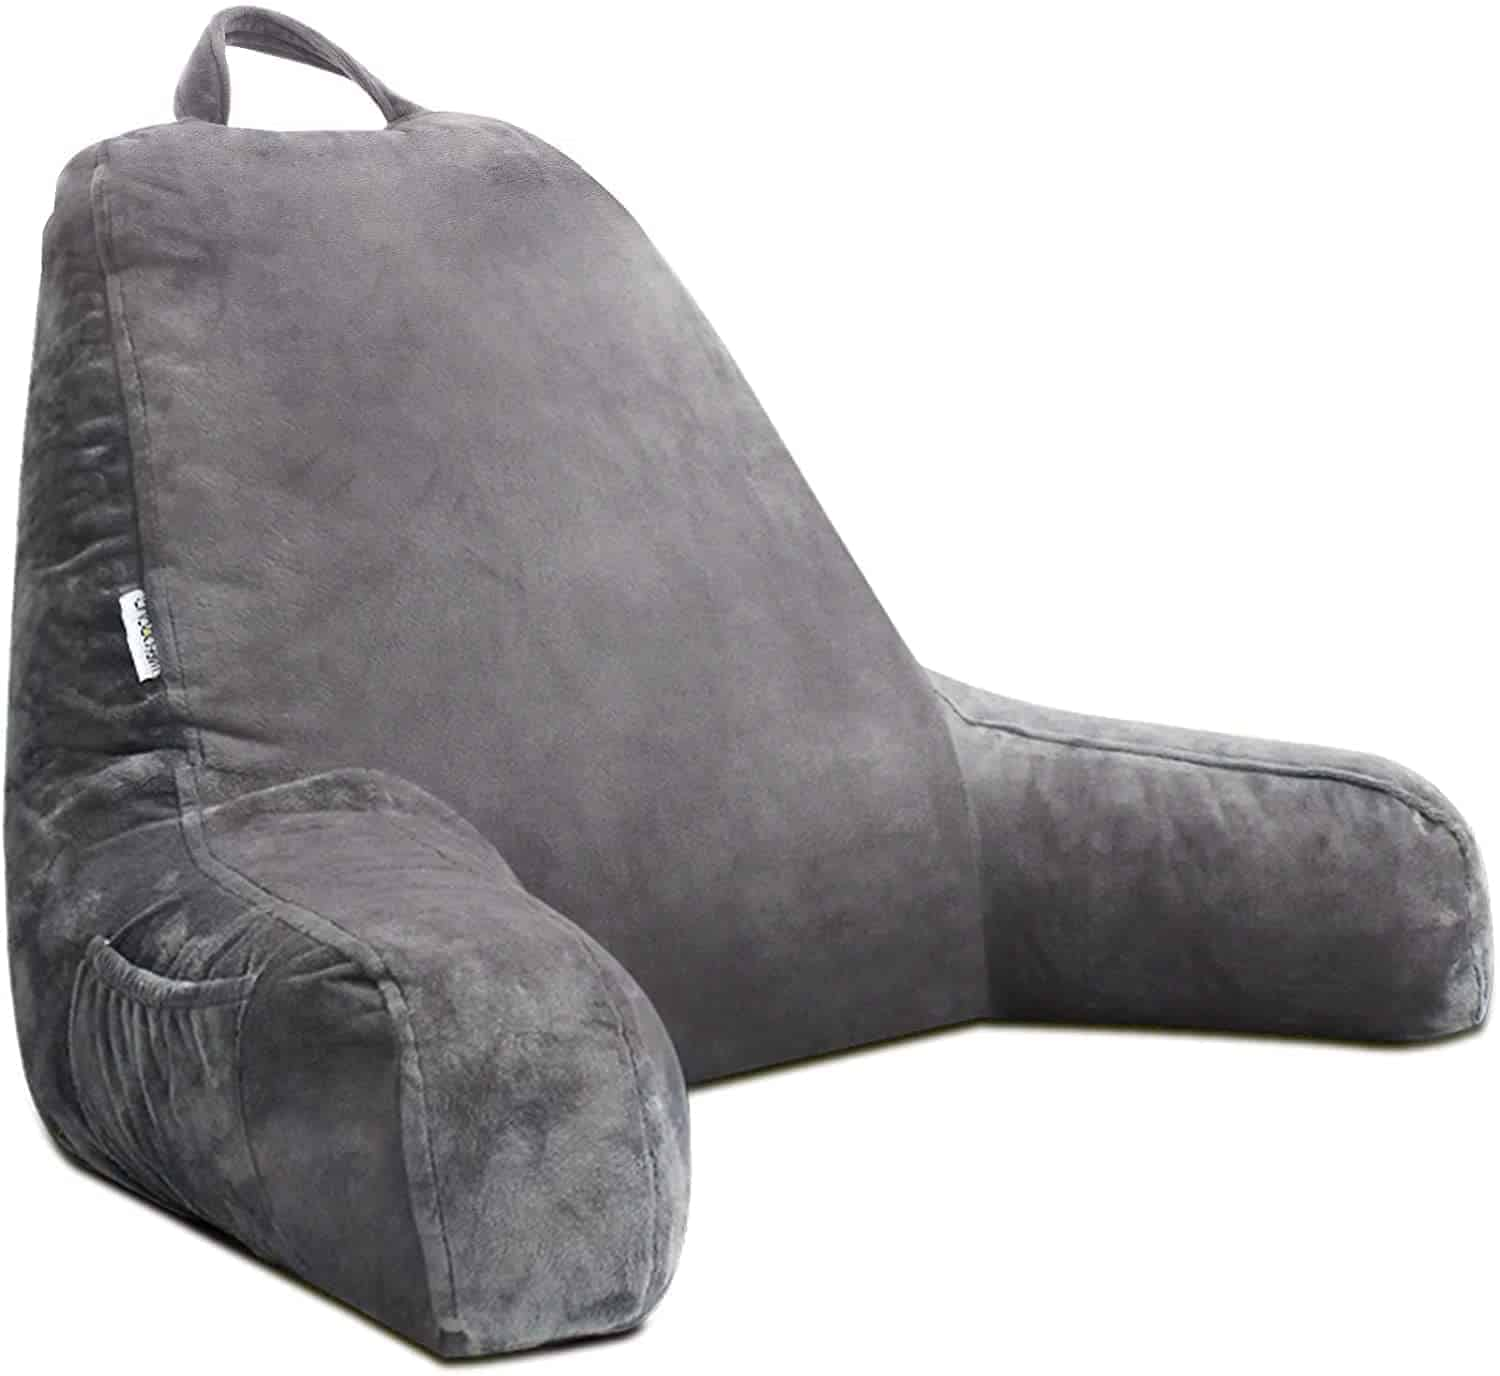 mittaGonG Backrest Reading Pillow with Arms Removable Cover Gray